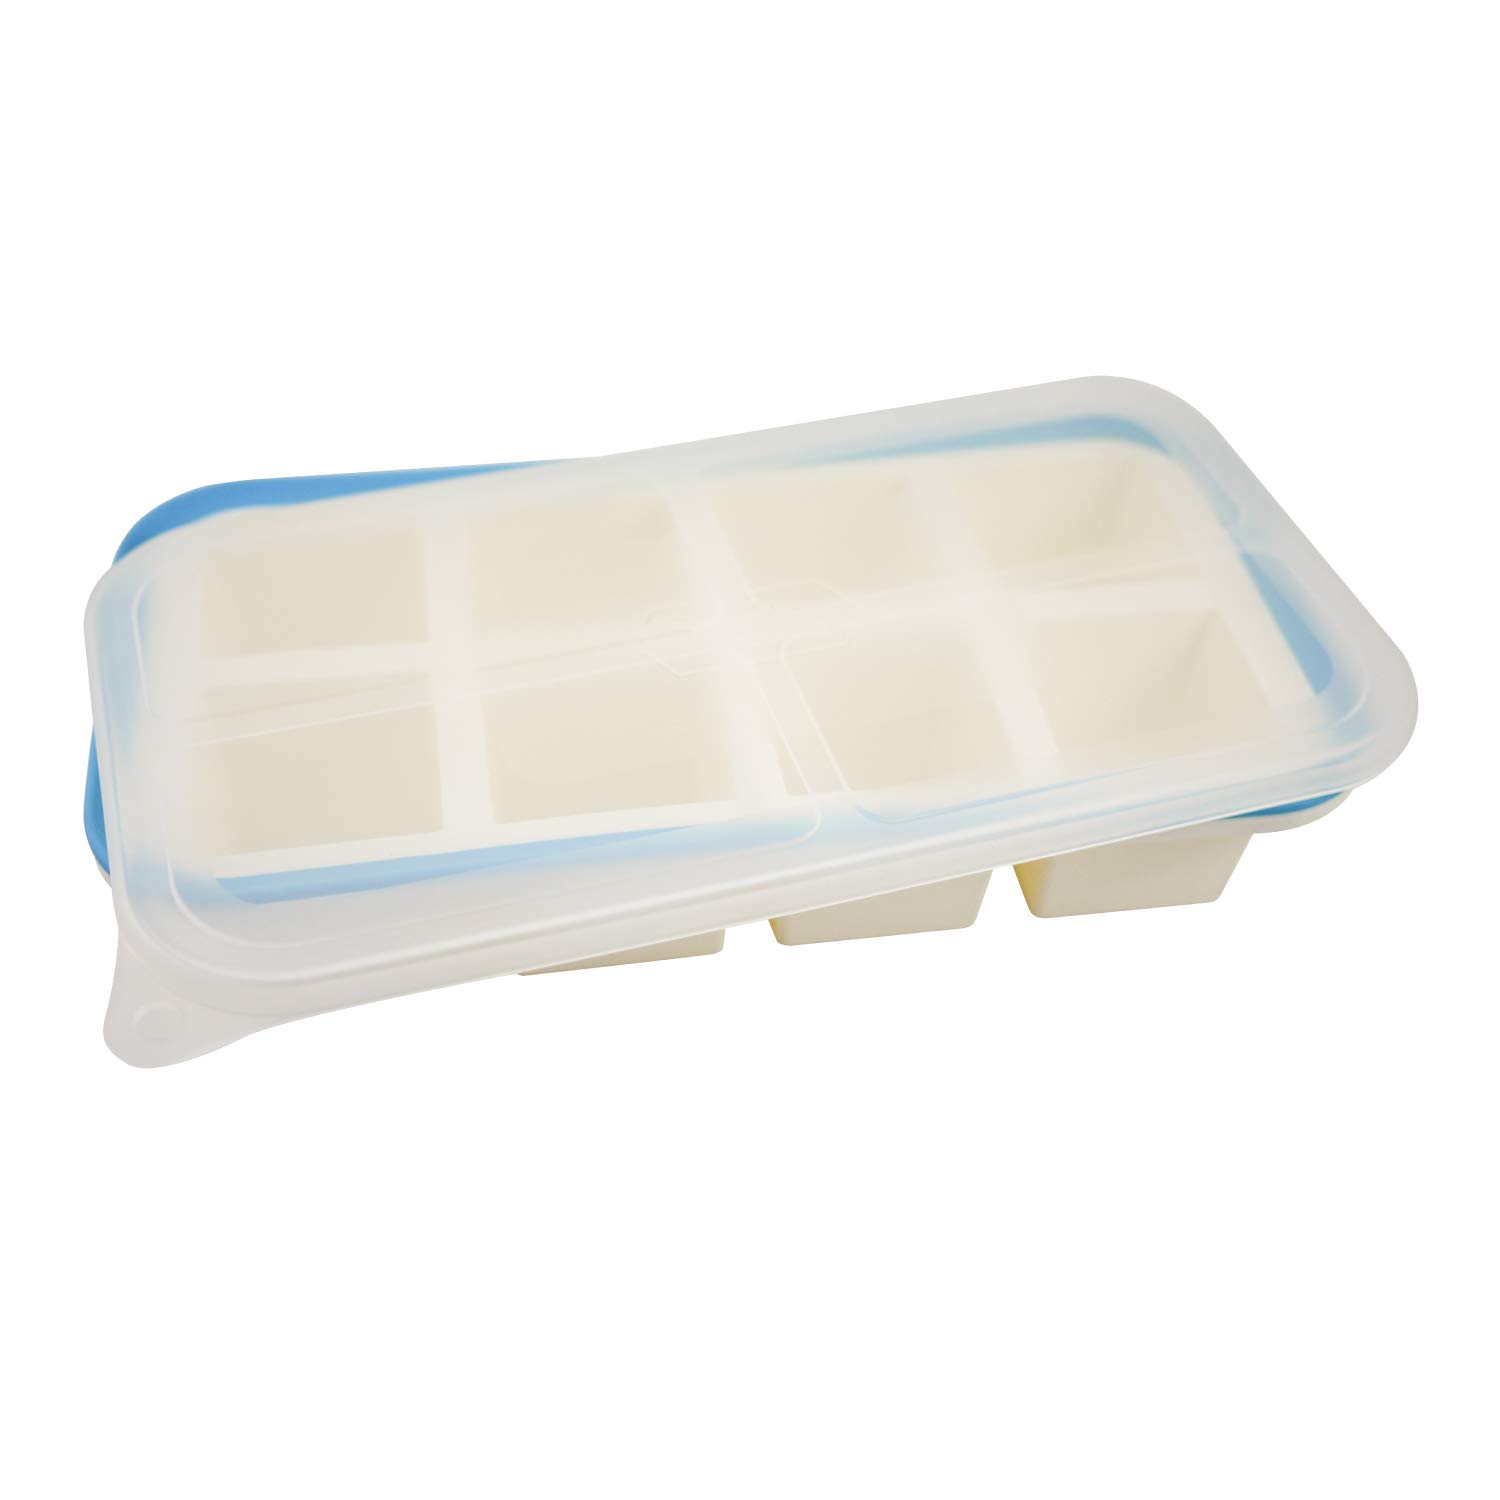 Superb Cube 2 Inch Cube Silicone Ice Cube Tray with EZ-Release & No-Spill Steel Reinforced Rim - Makes 8 Cubes with Clear Lid